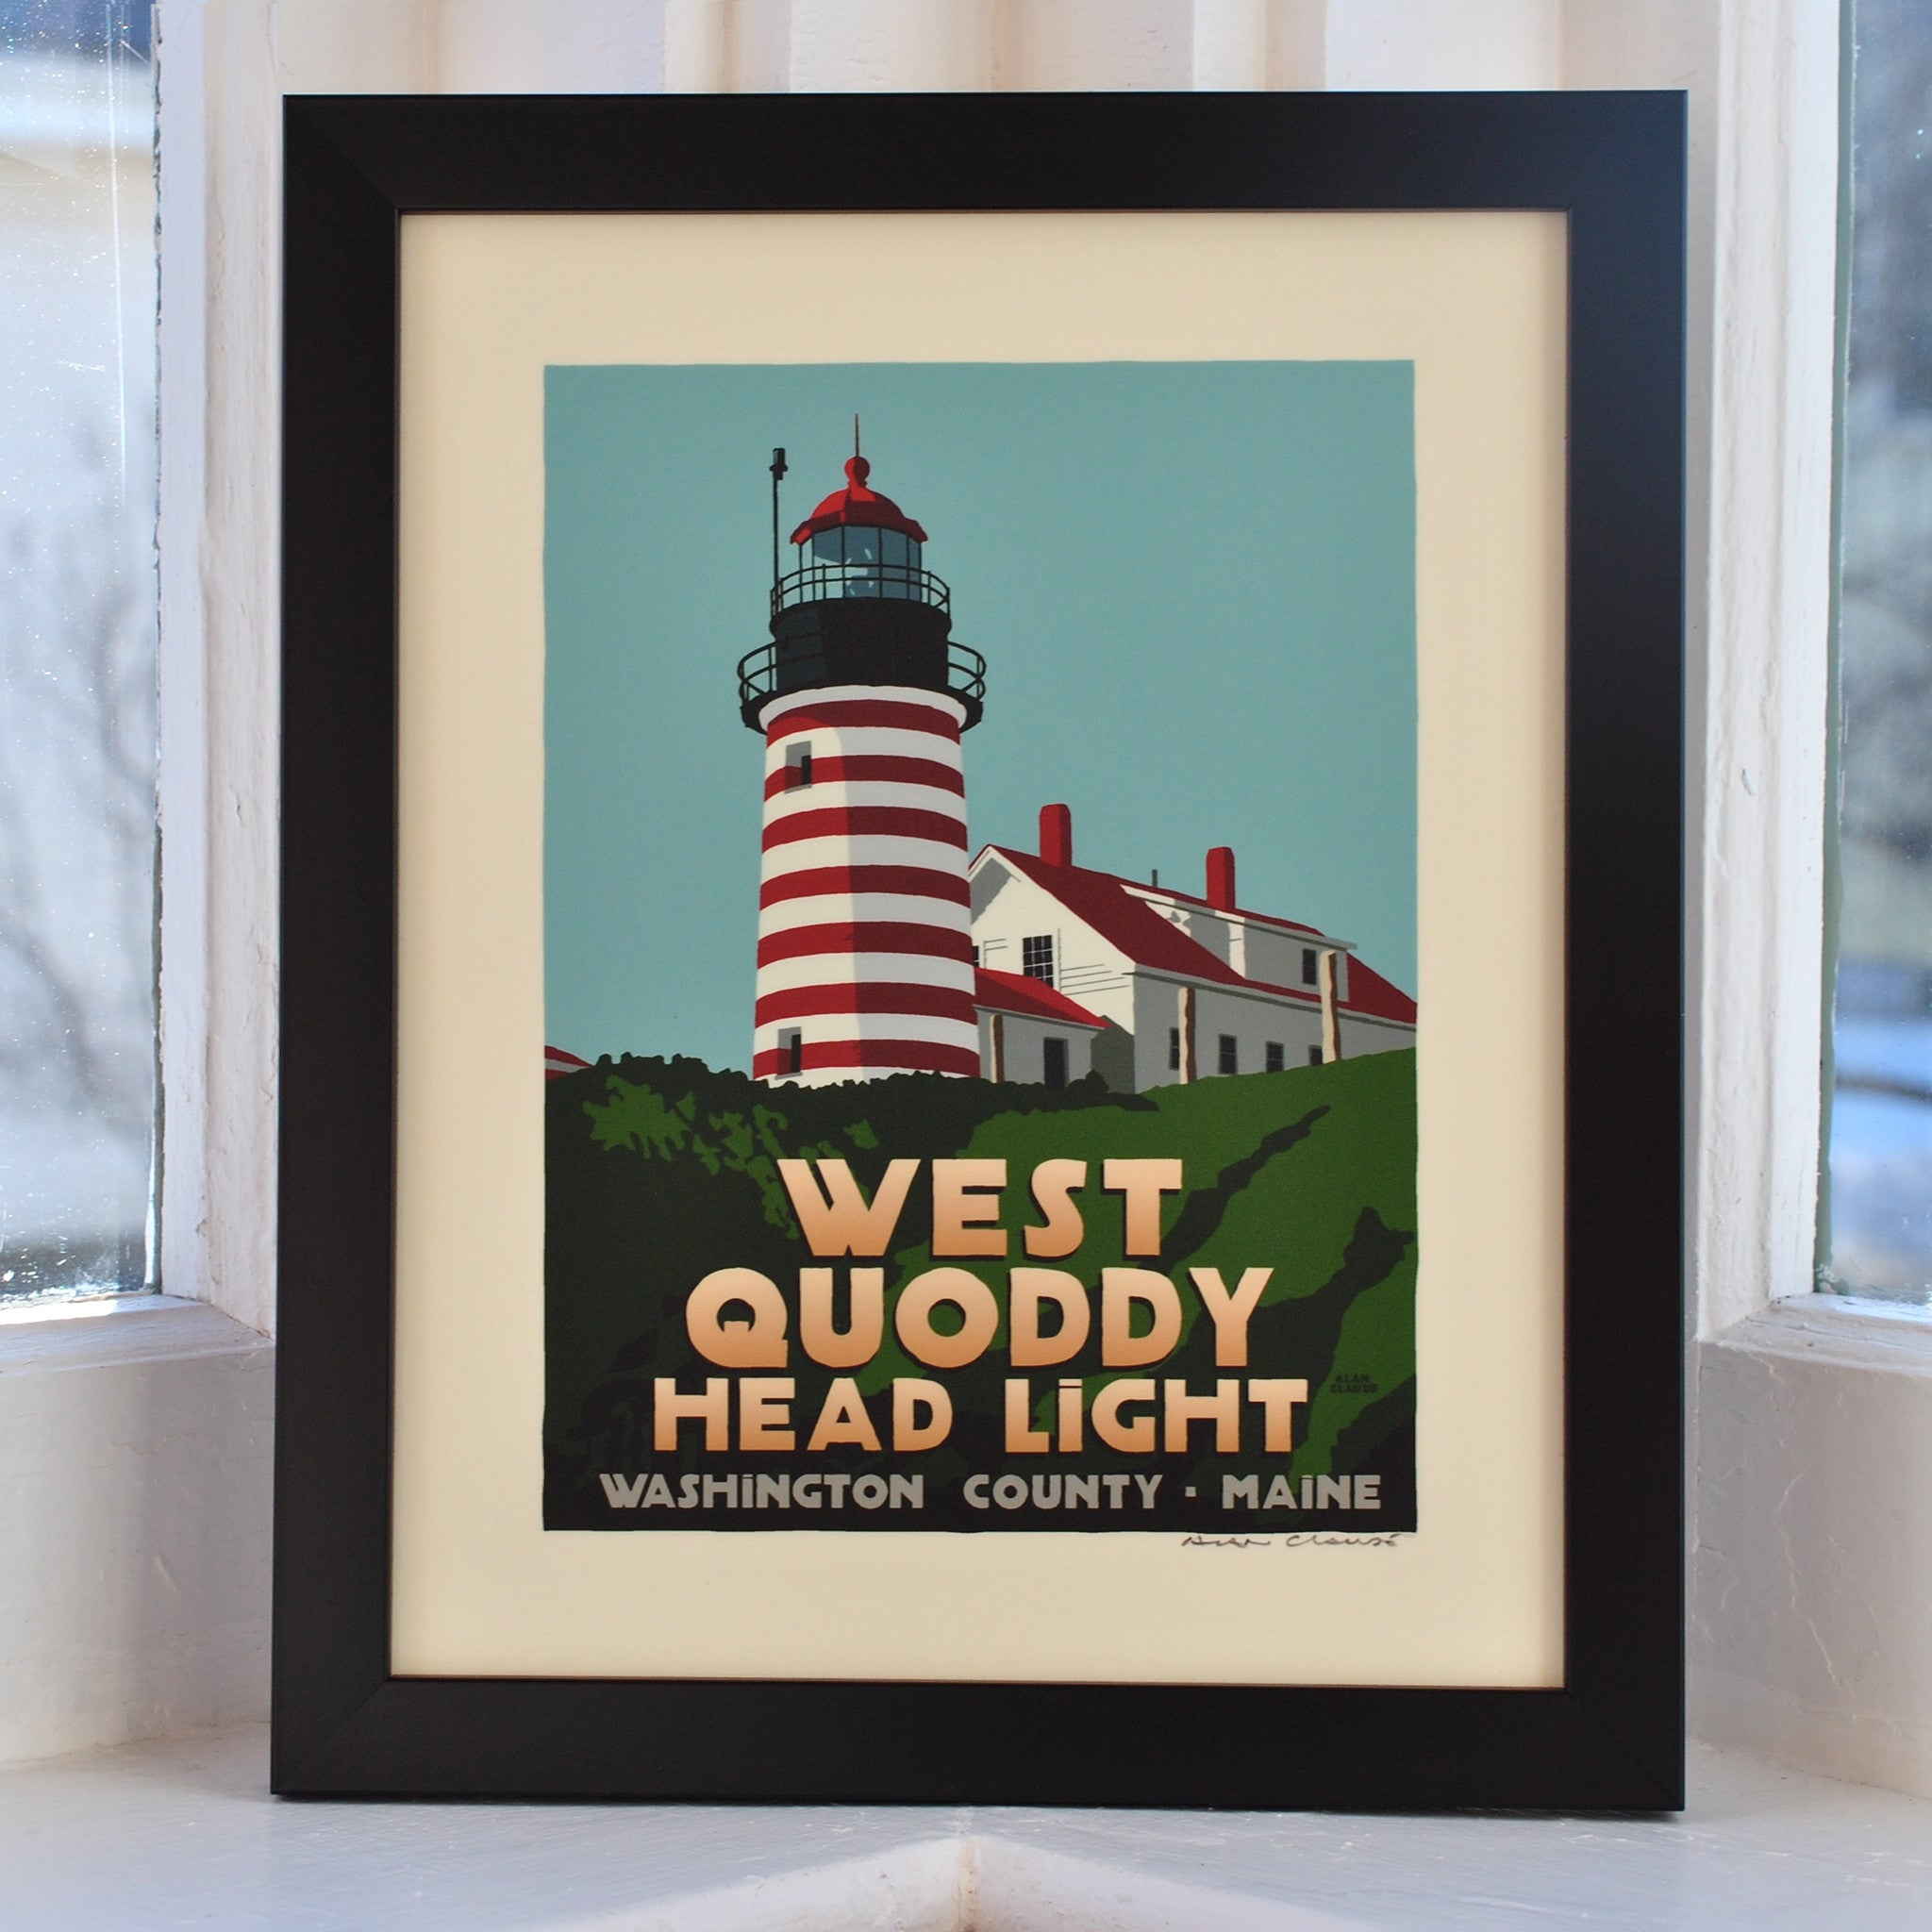 "West Quoddy Head Light Art Print 8"" x 10"" Framed Travel Poster - Maine"